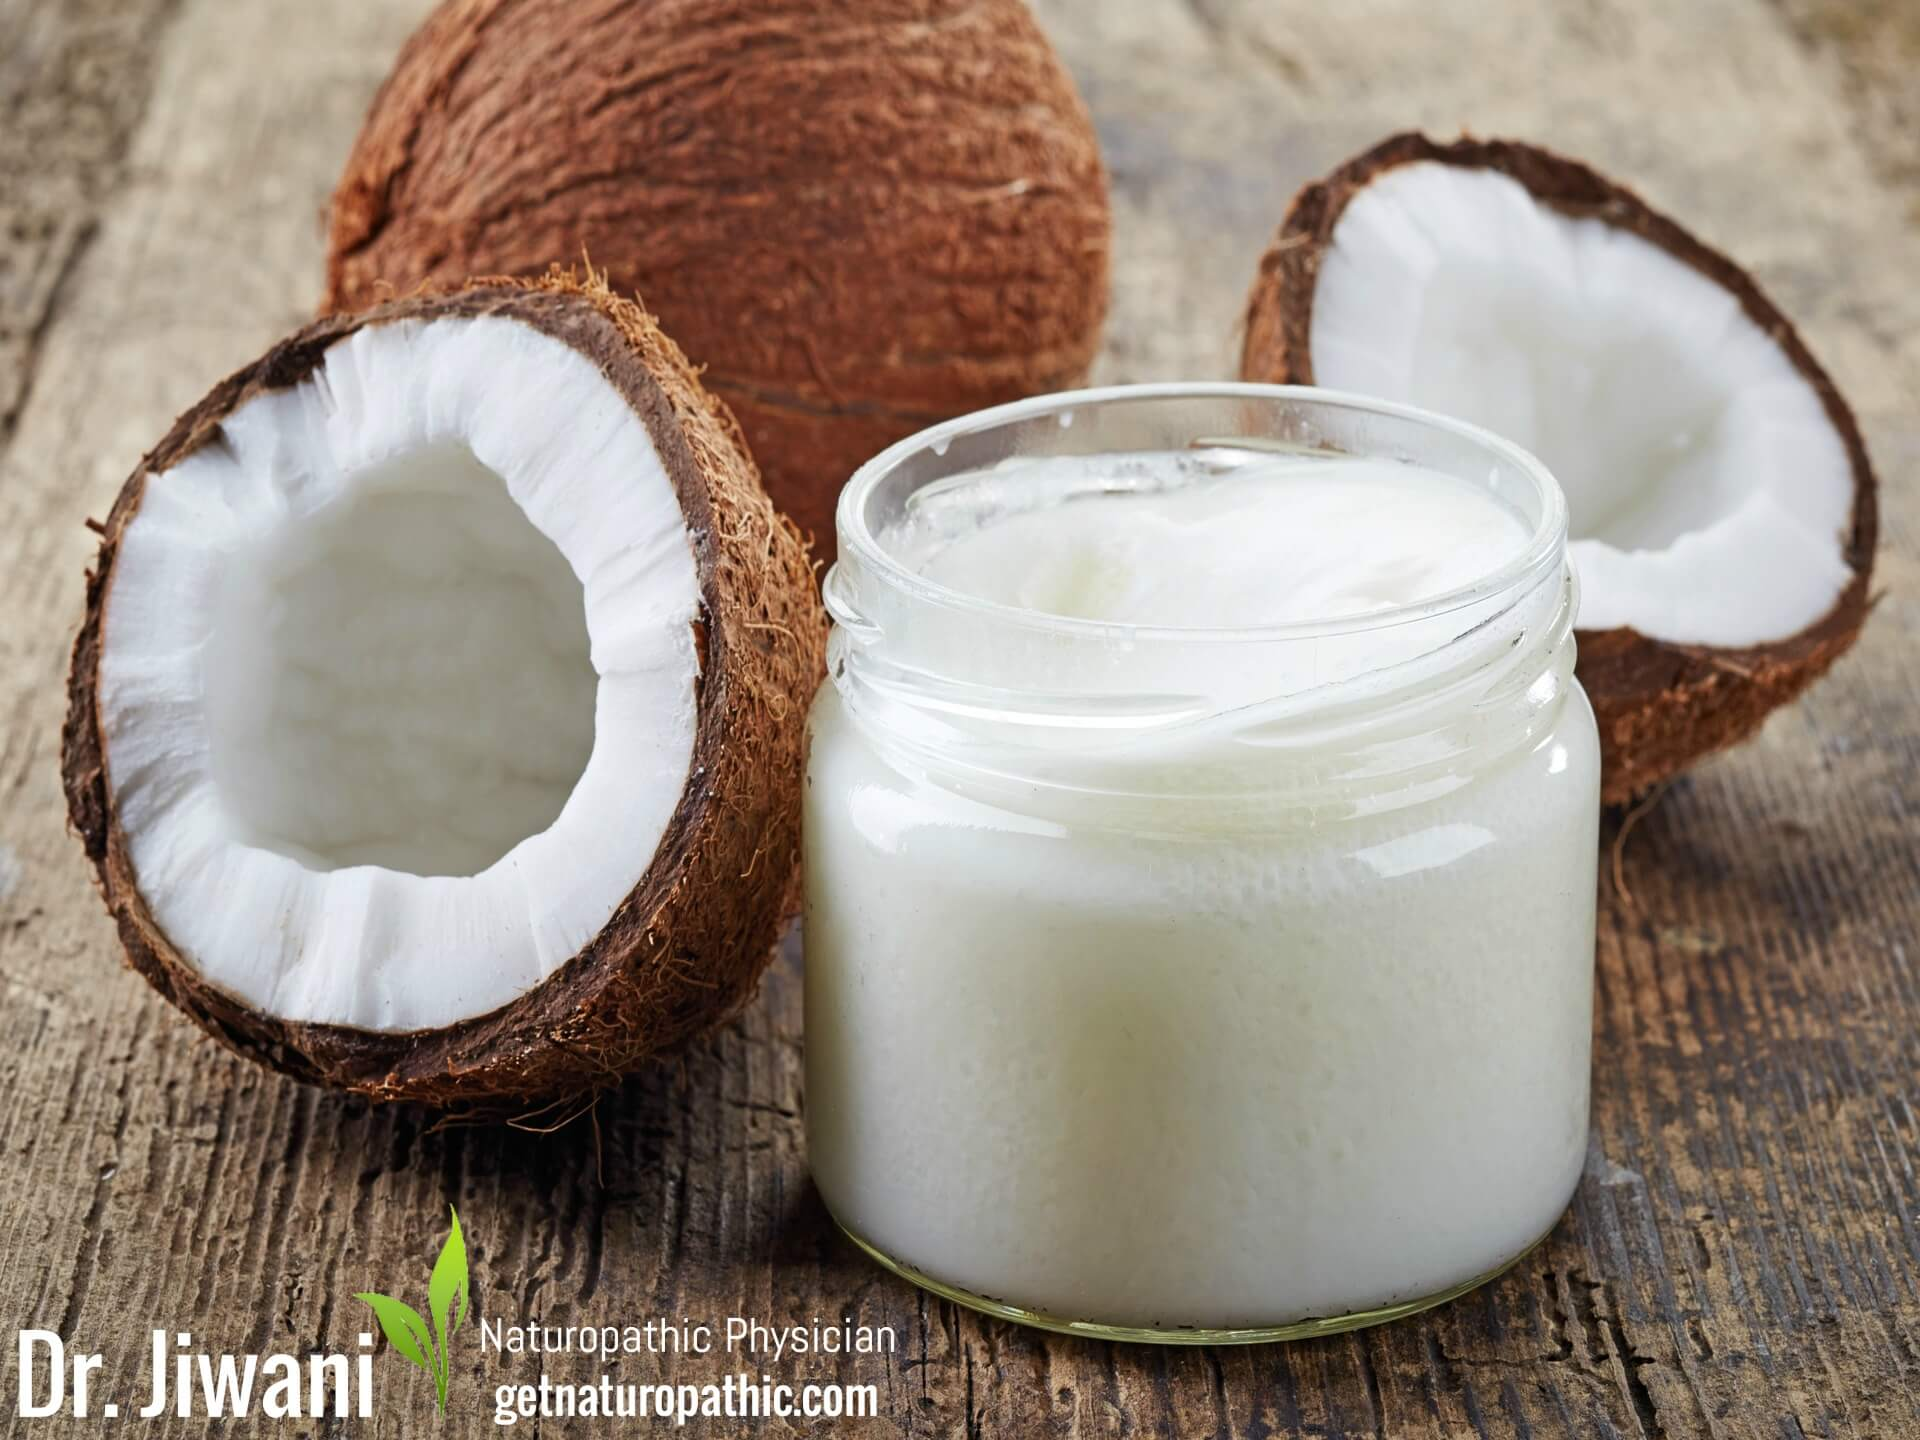 Is Coconut Oil Good or Bad For You?  Truths & Deceptions About This Tropical Fat | Dr. Jiwani's Naturopathic Nuggets Blog